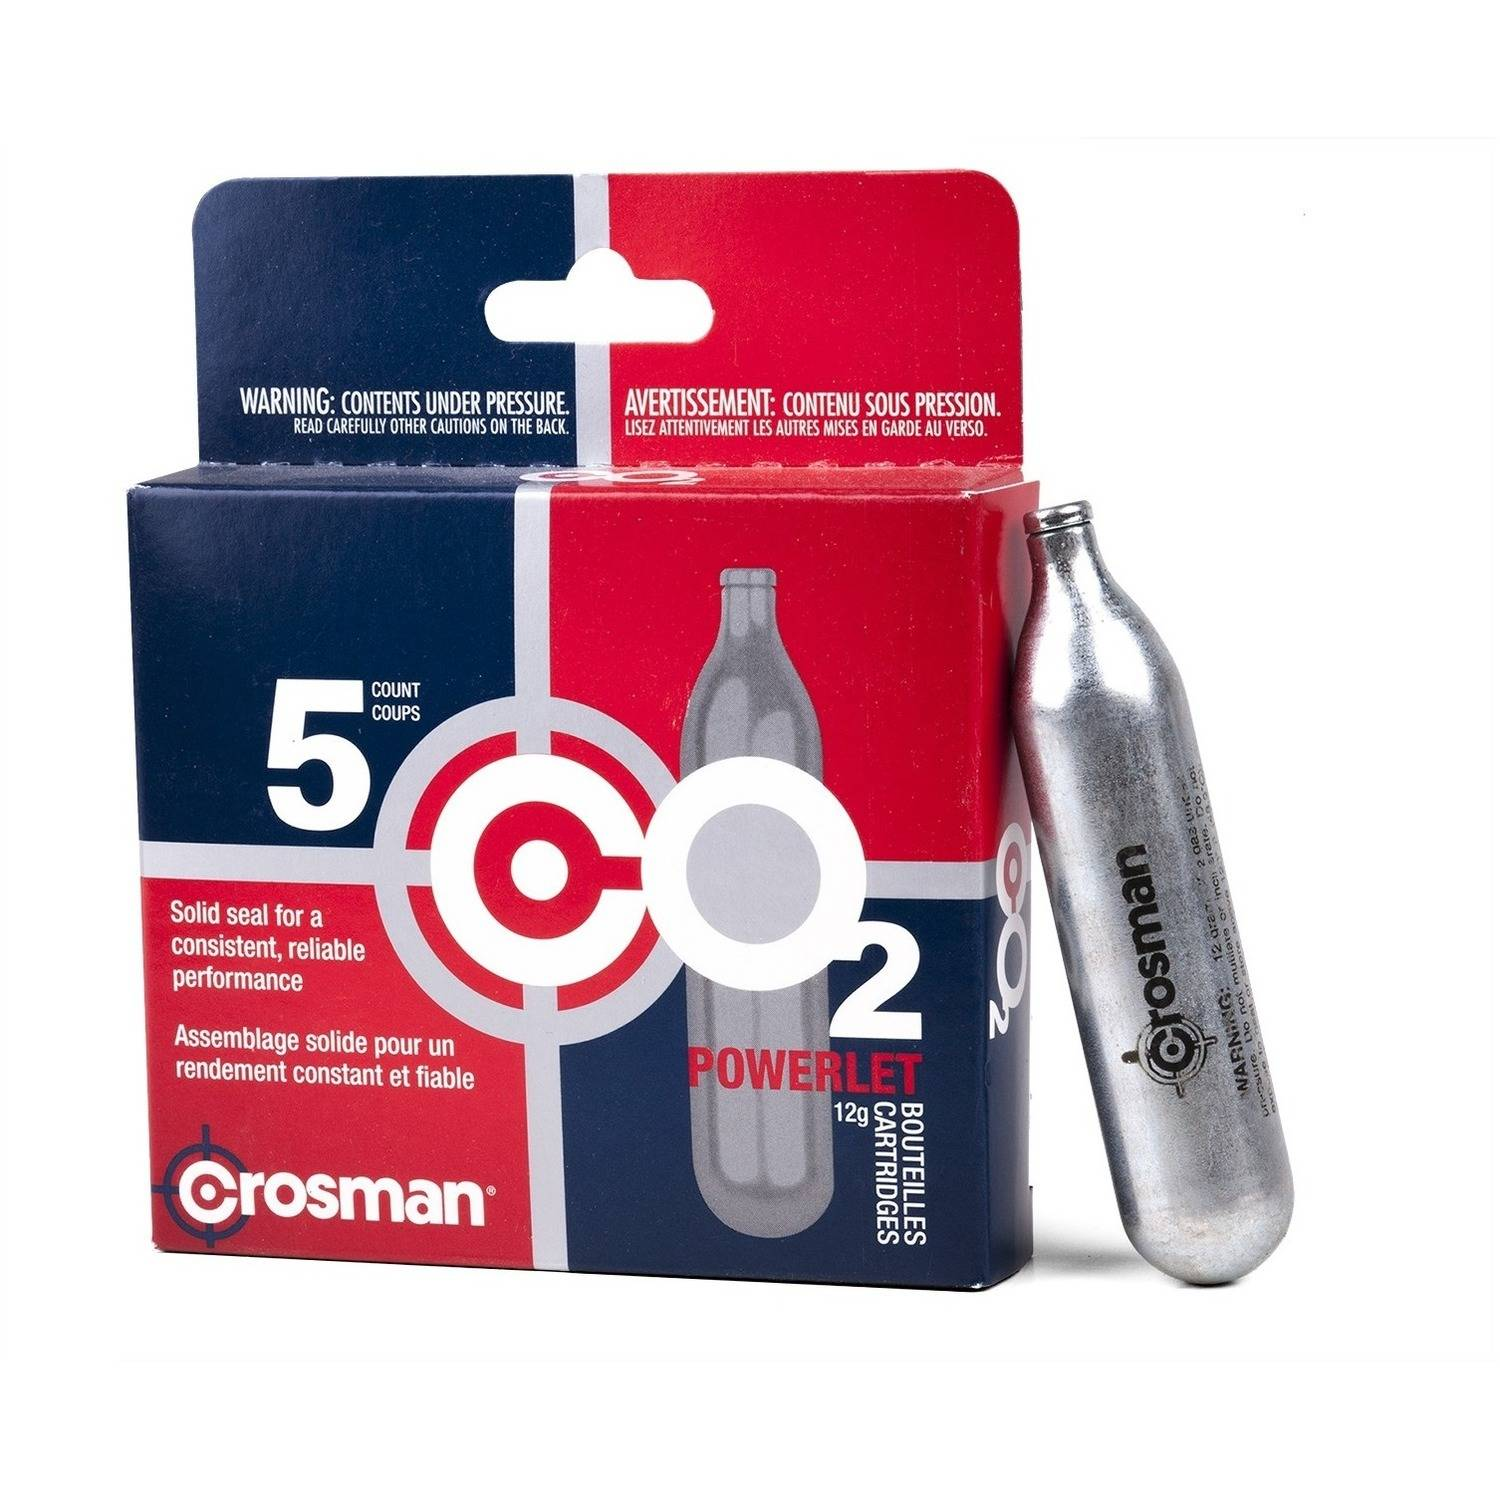 Crosman 5ct Box of CO2 Powerlets